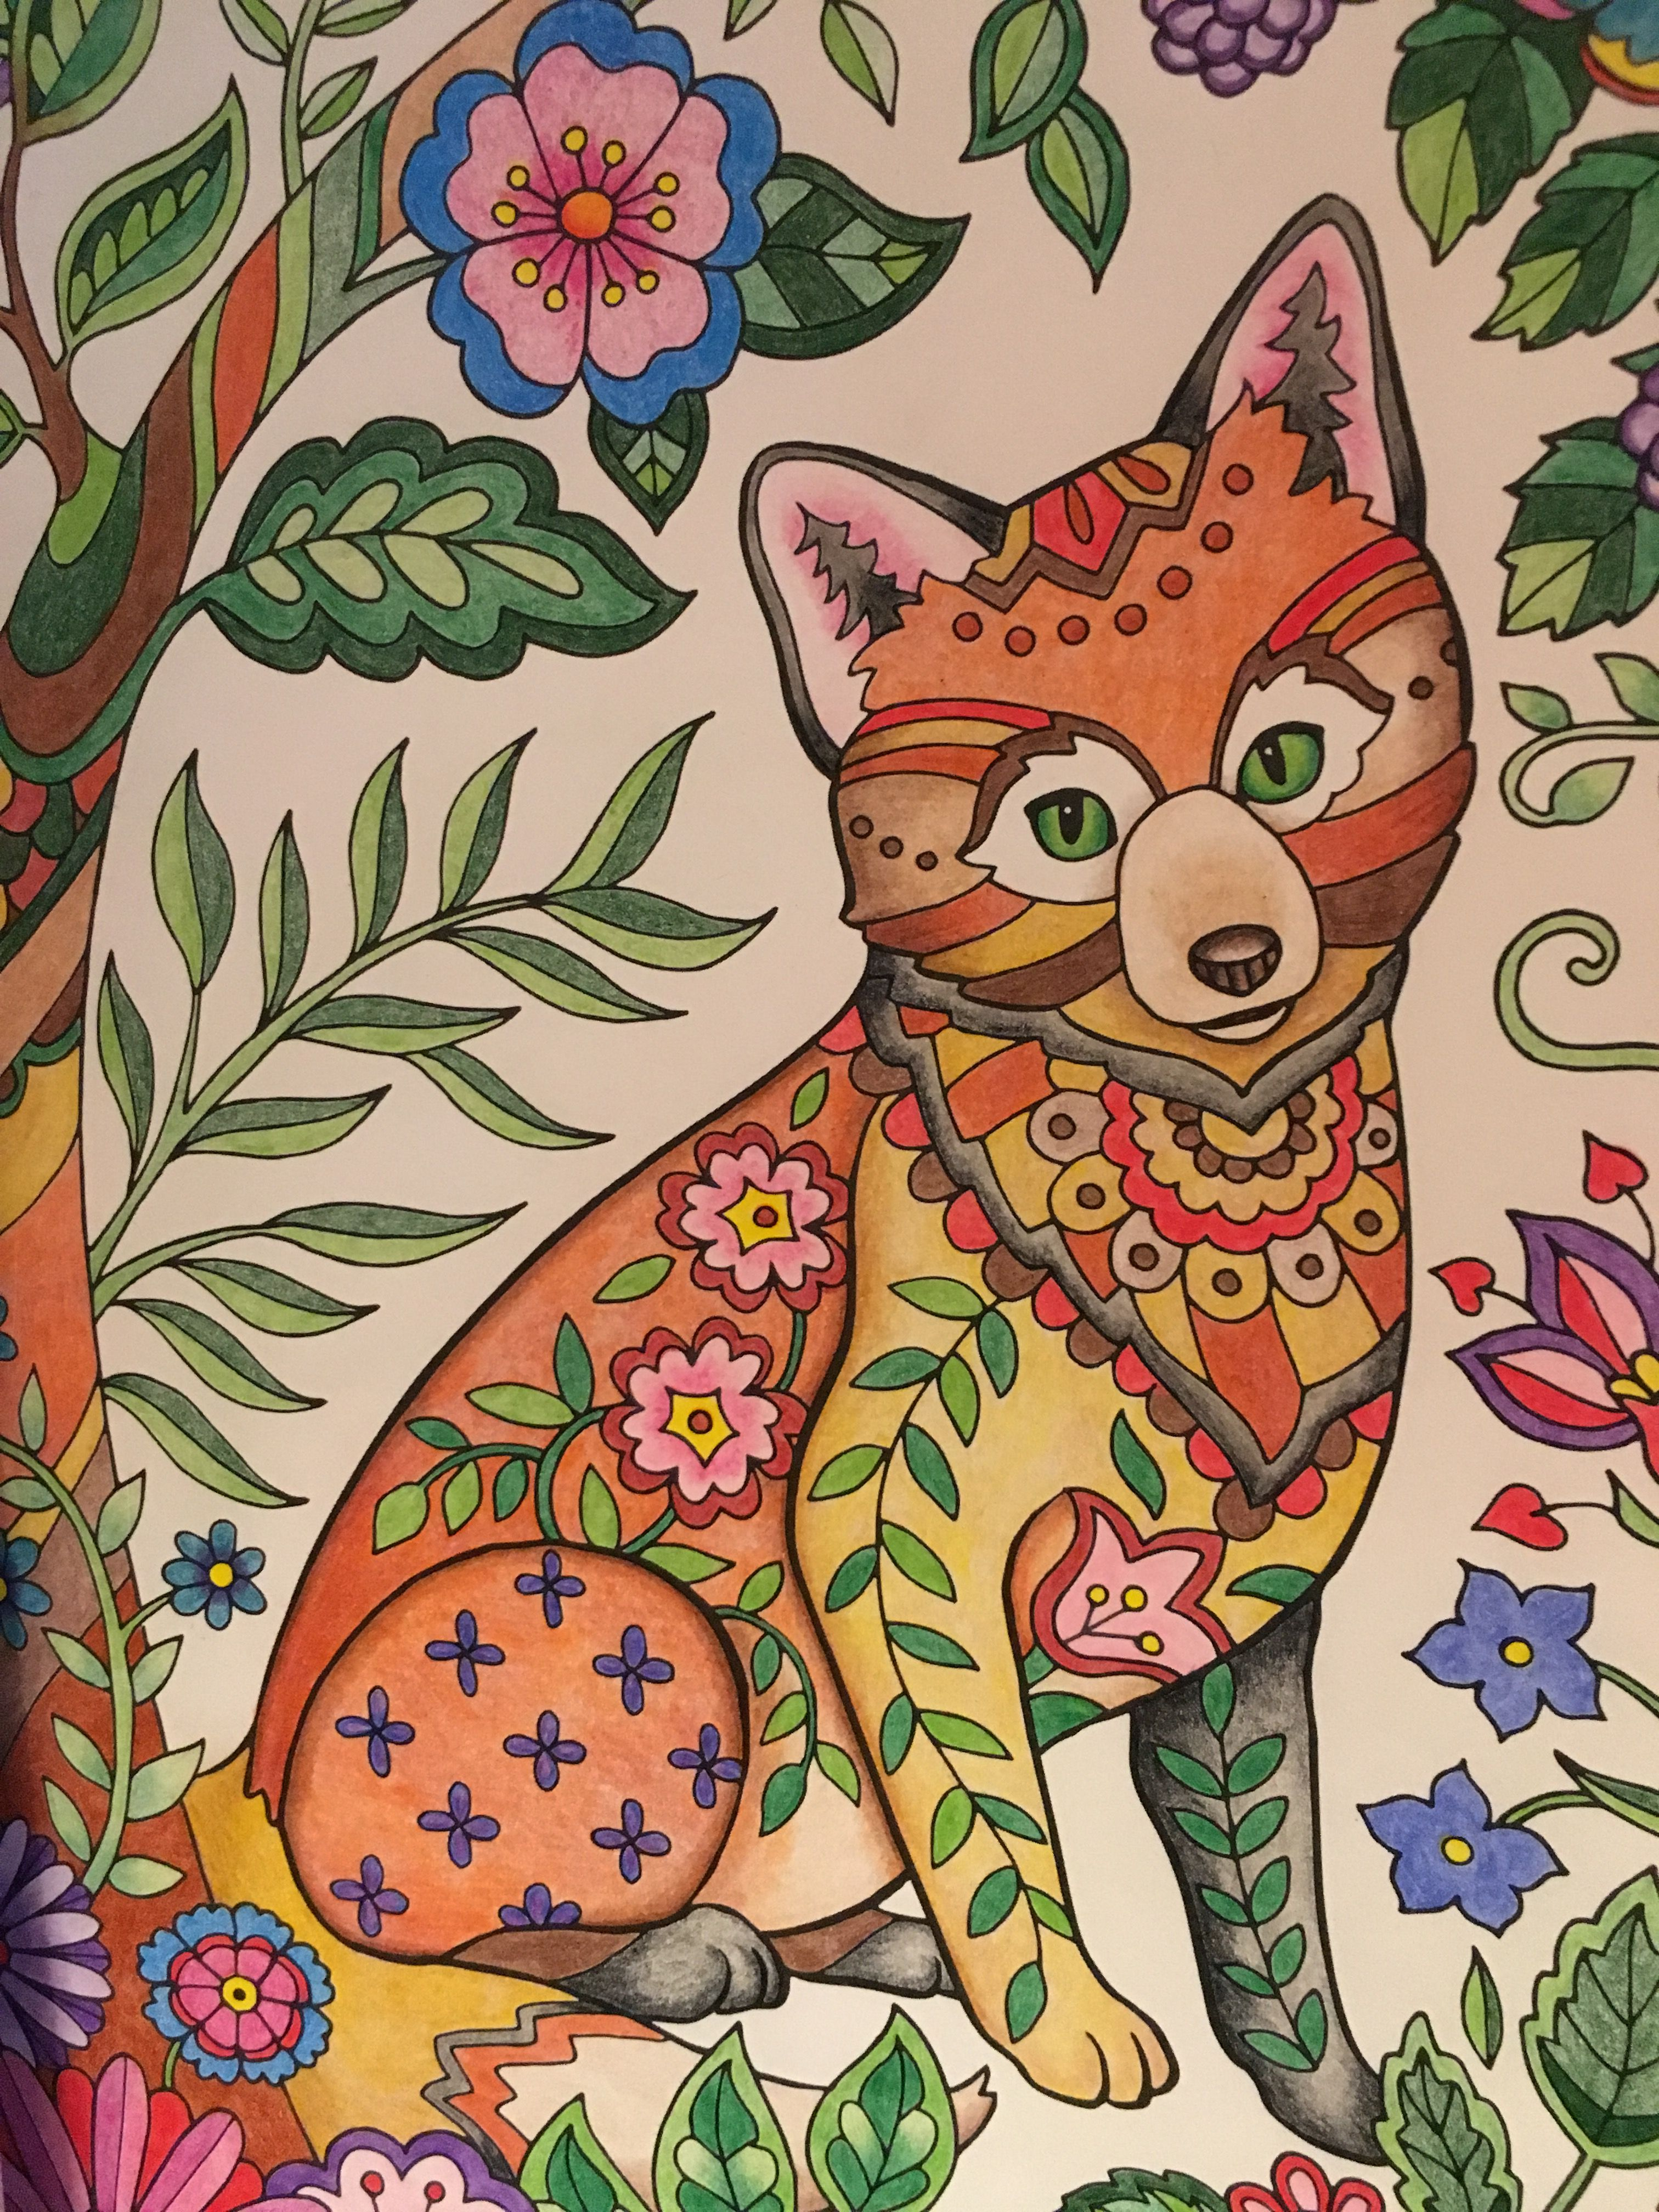 Color Super Cute Animals Coloring Book By Jane Maday Super Cute Animals Animal Coloring Books Cute Animal Pictures